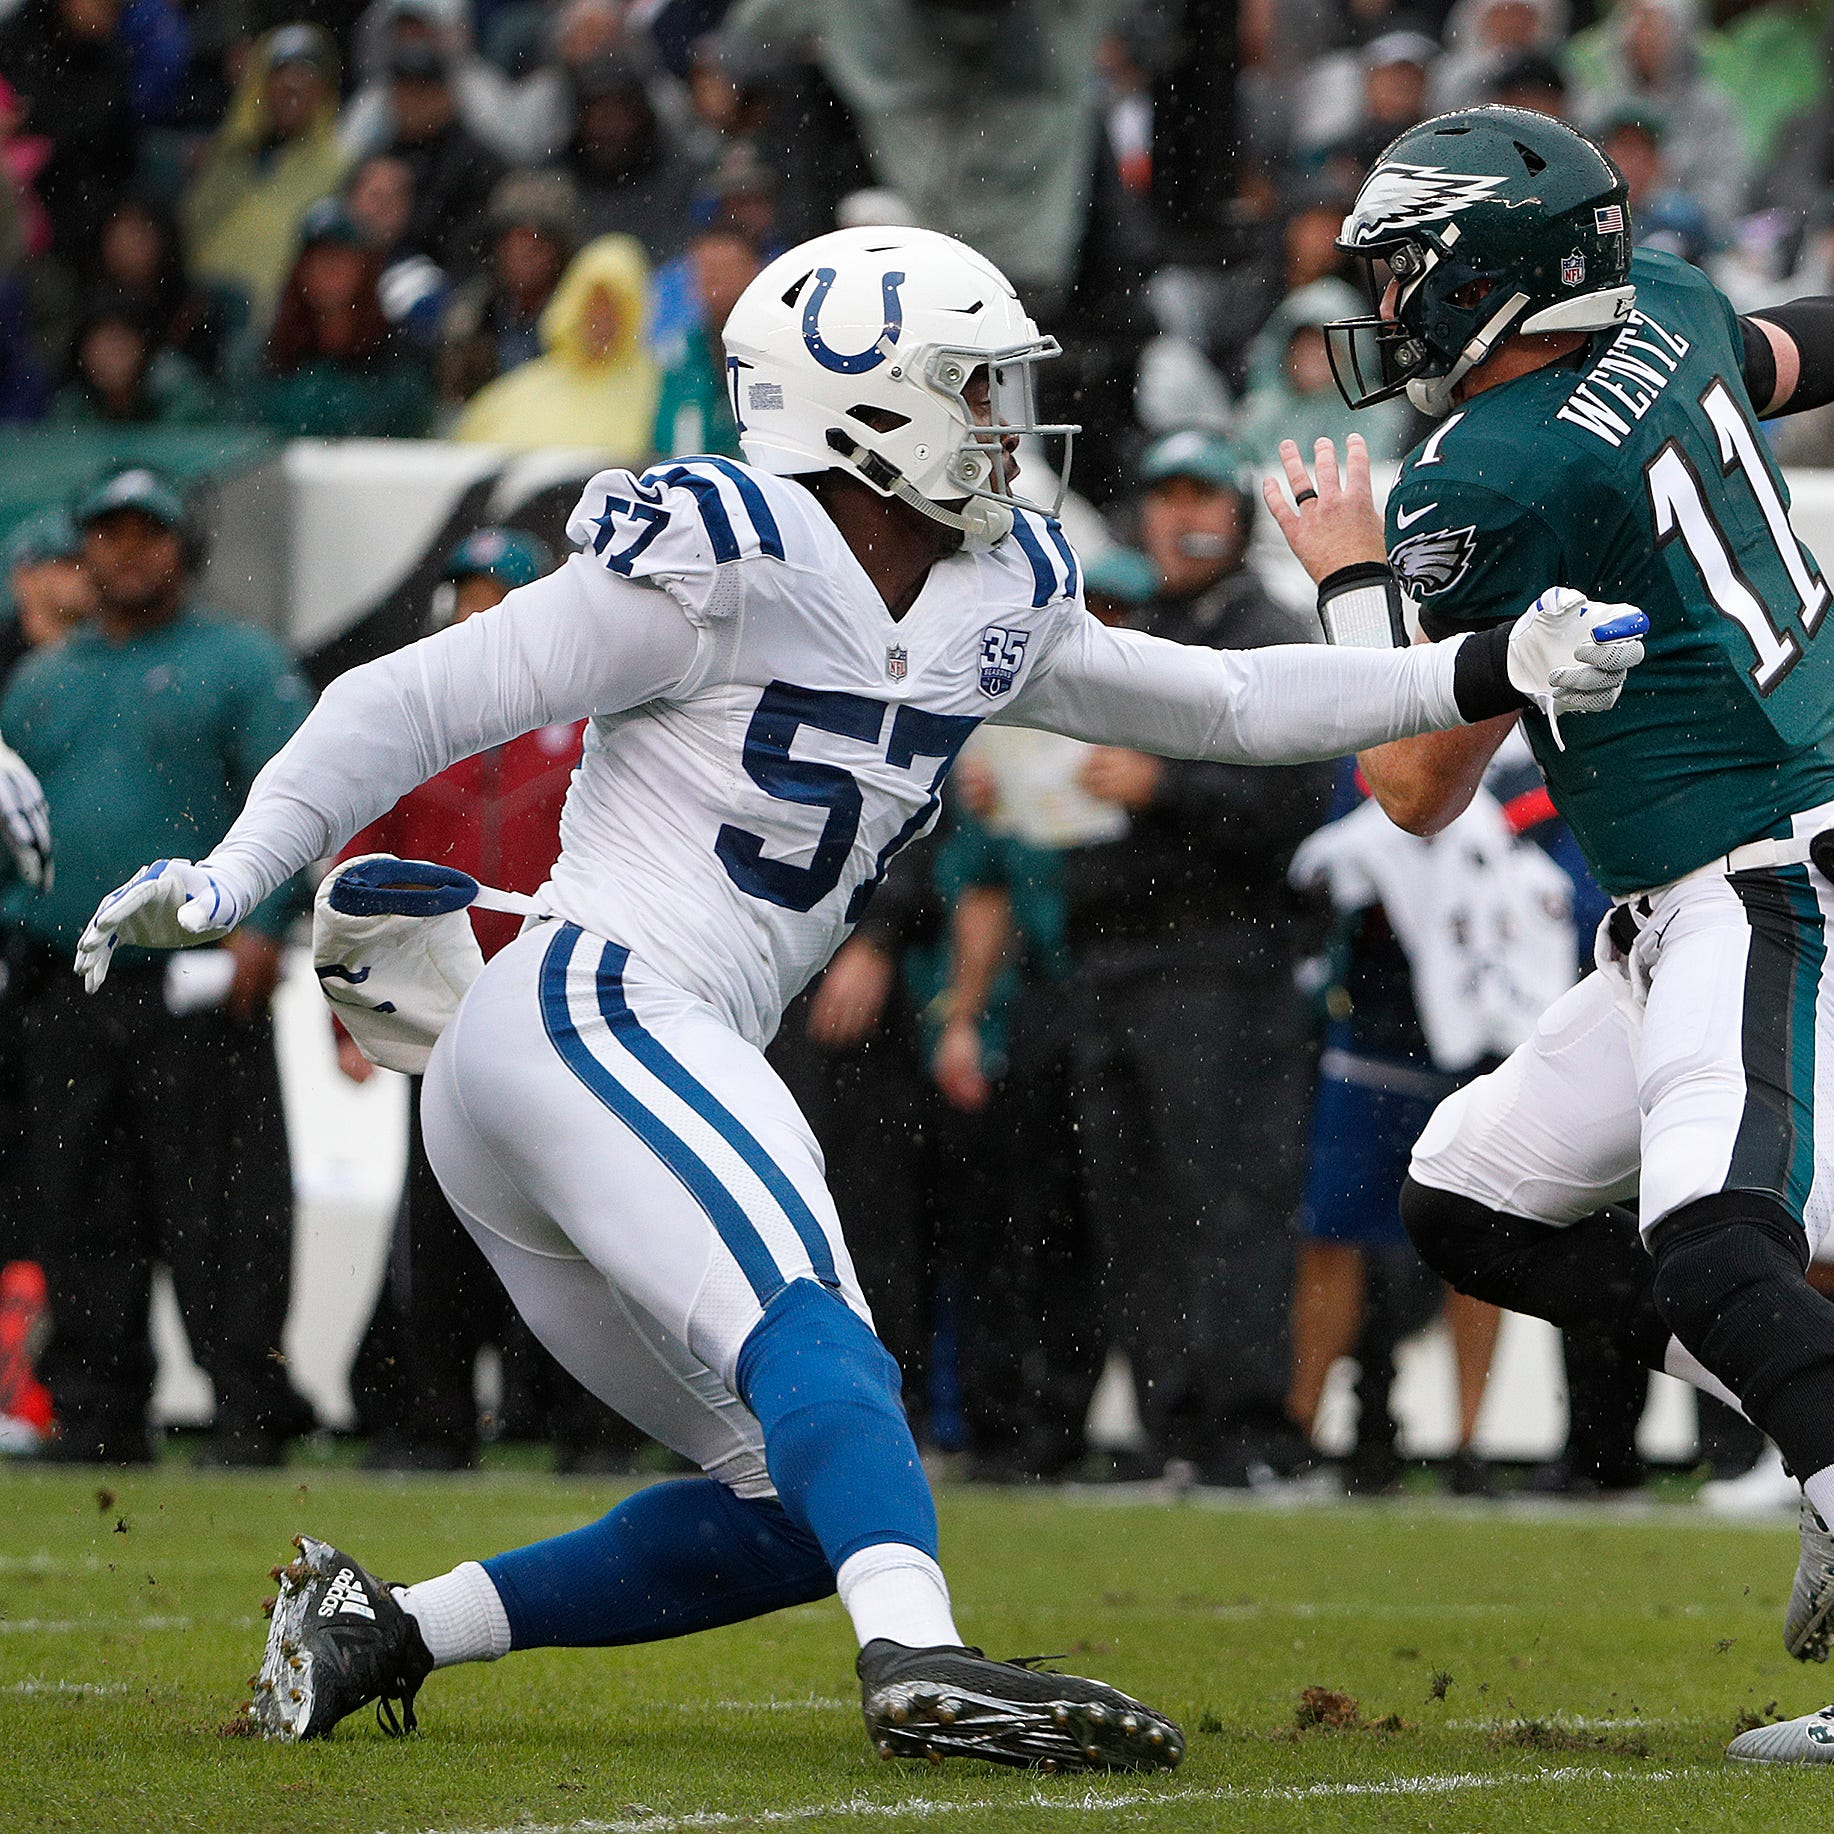 Colts: Game beginning to slow down for rookie, Robert Mathis pupil Kemoko Turay